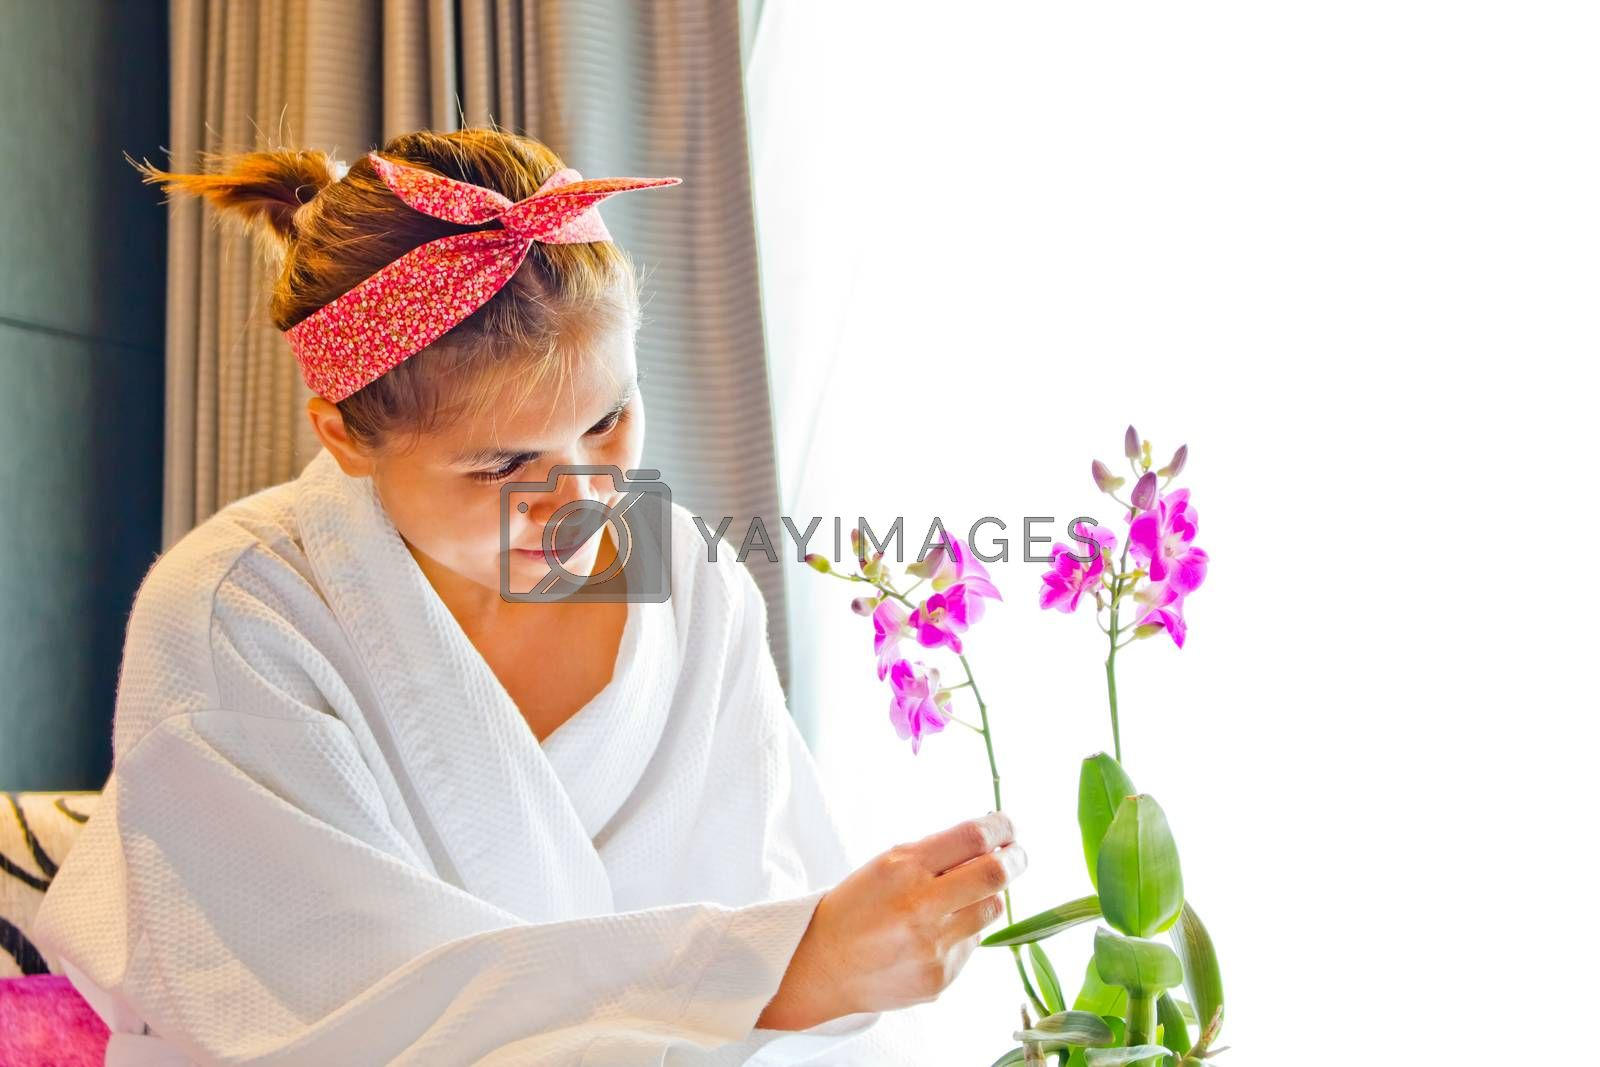 Lady wearing nightgown and flower arrangement in the morning